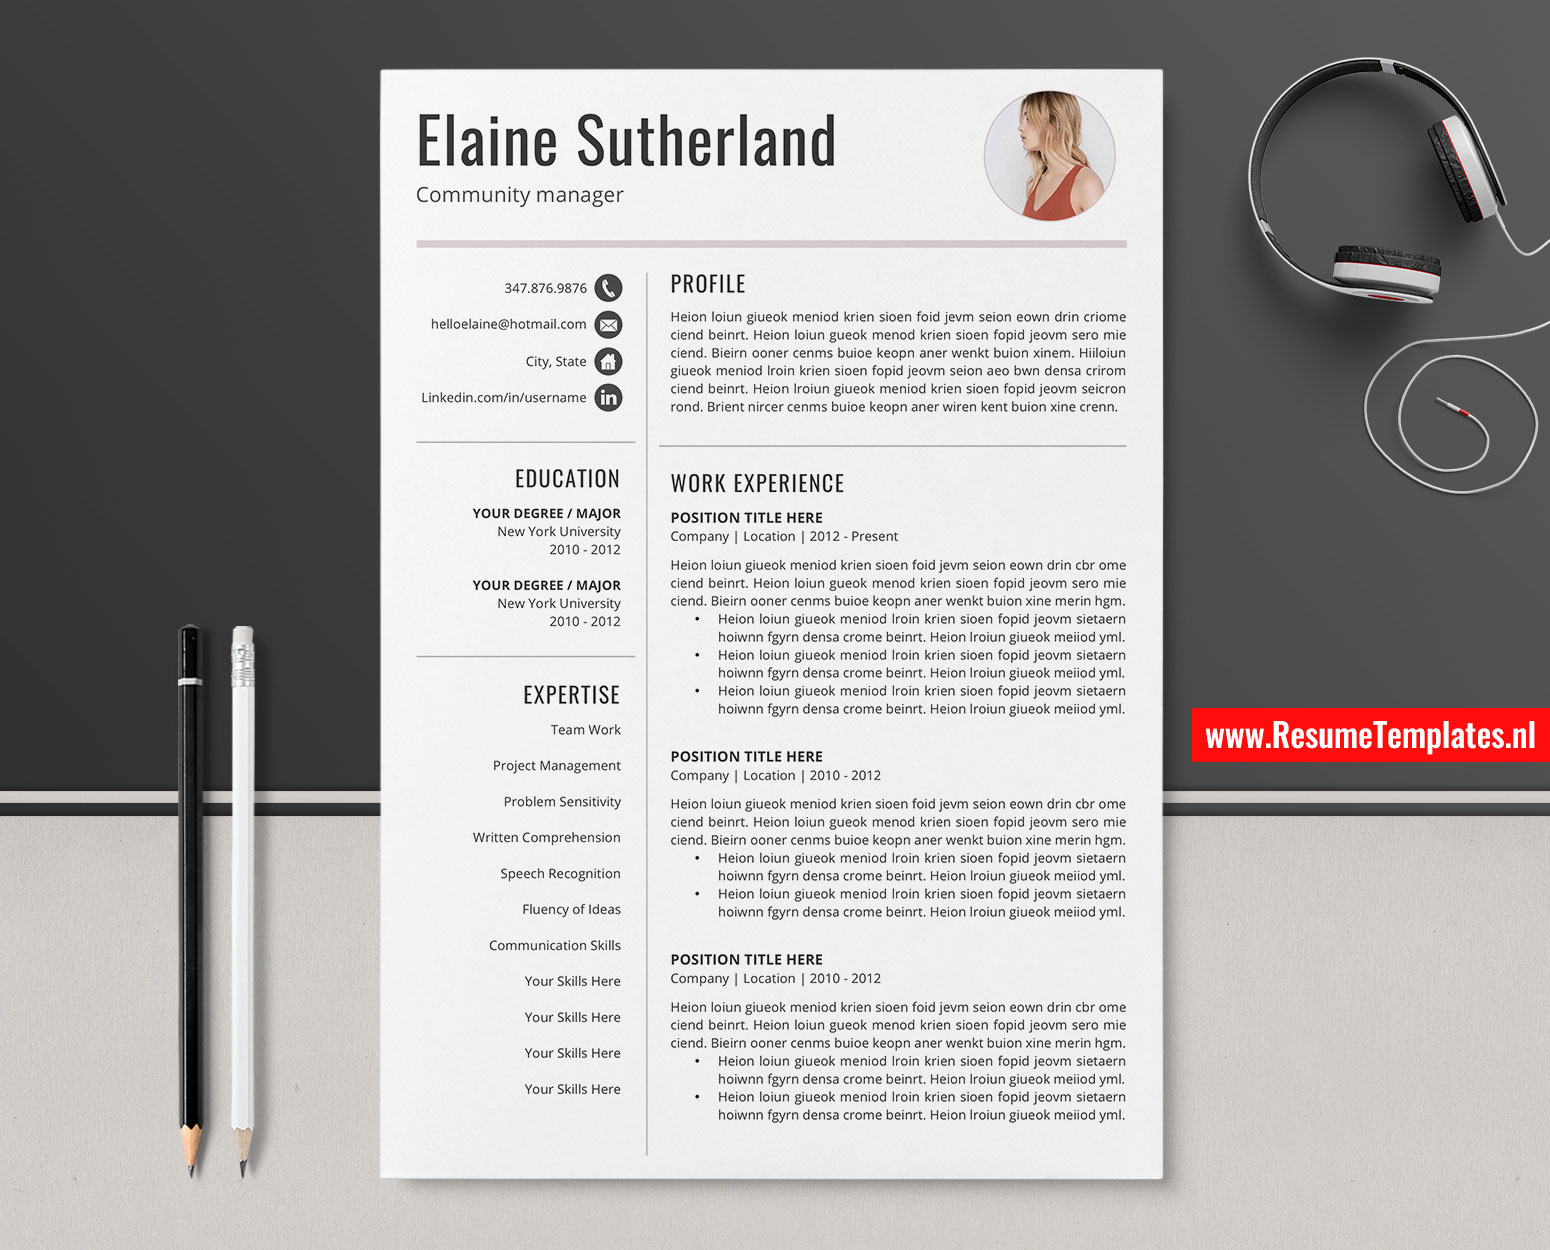 Cool Cv Templates from www.resumetemplates.nl